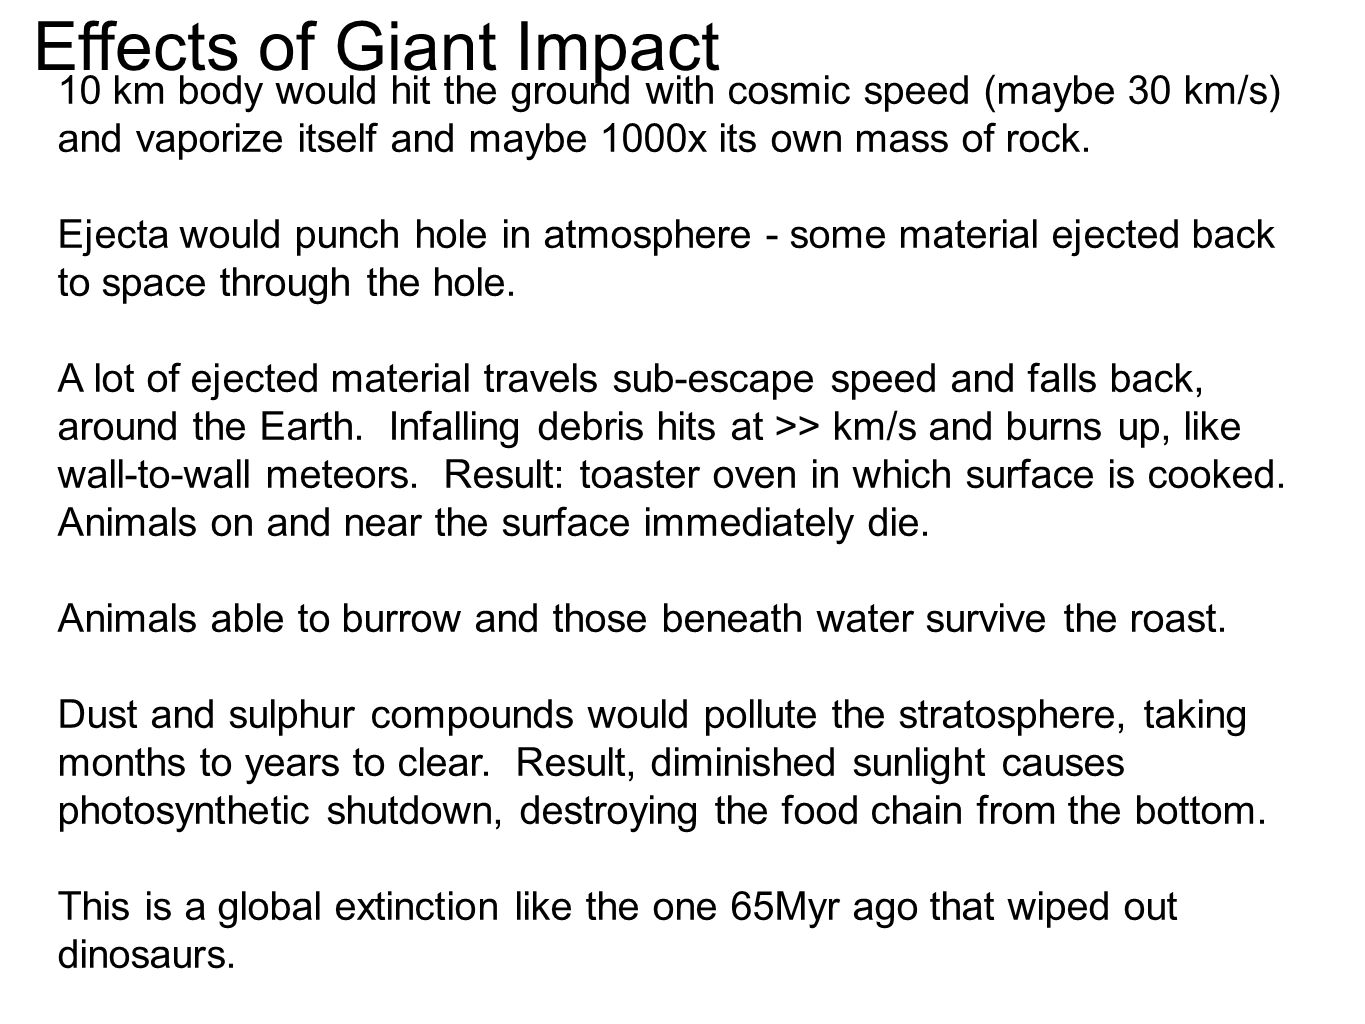 10 km body would hit the ground with cosmic speed (maybe 30 km/s) and vaporize itself and maybe 1000x its own mass of rock. Ejecta would punch hole in